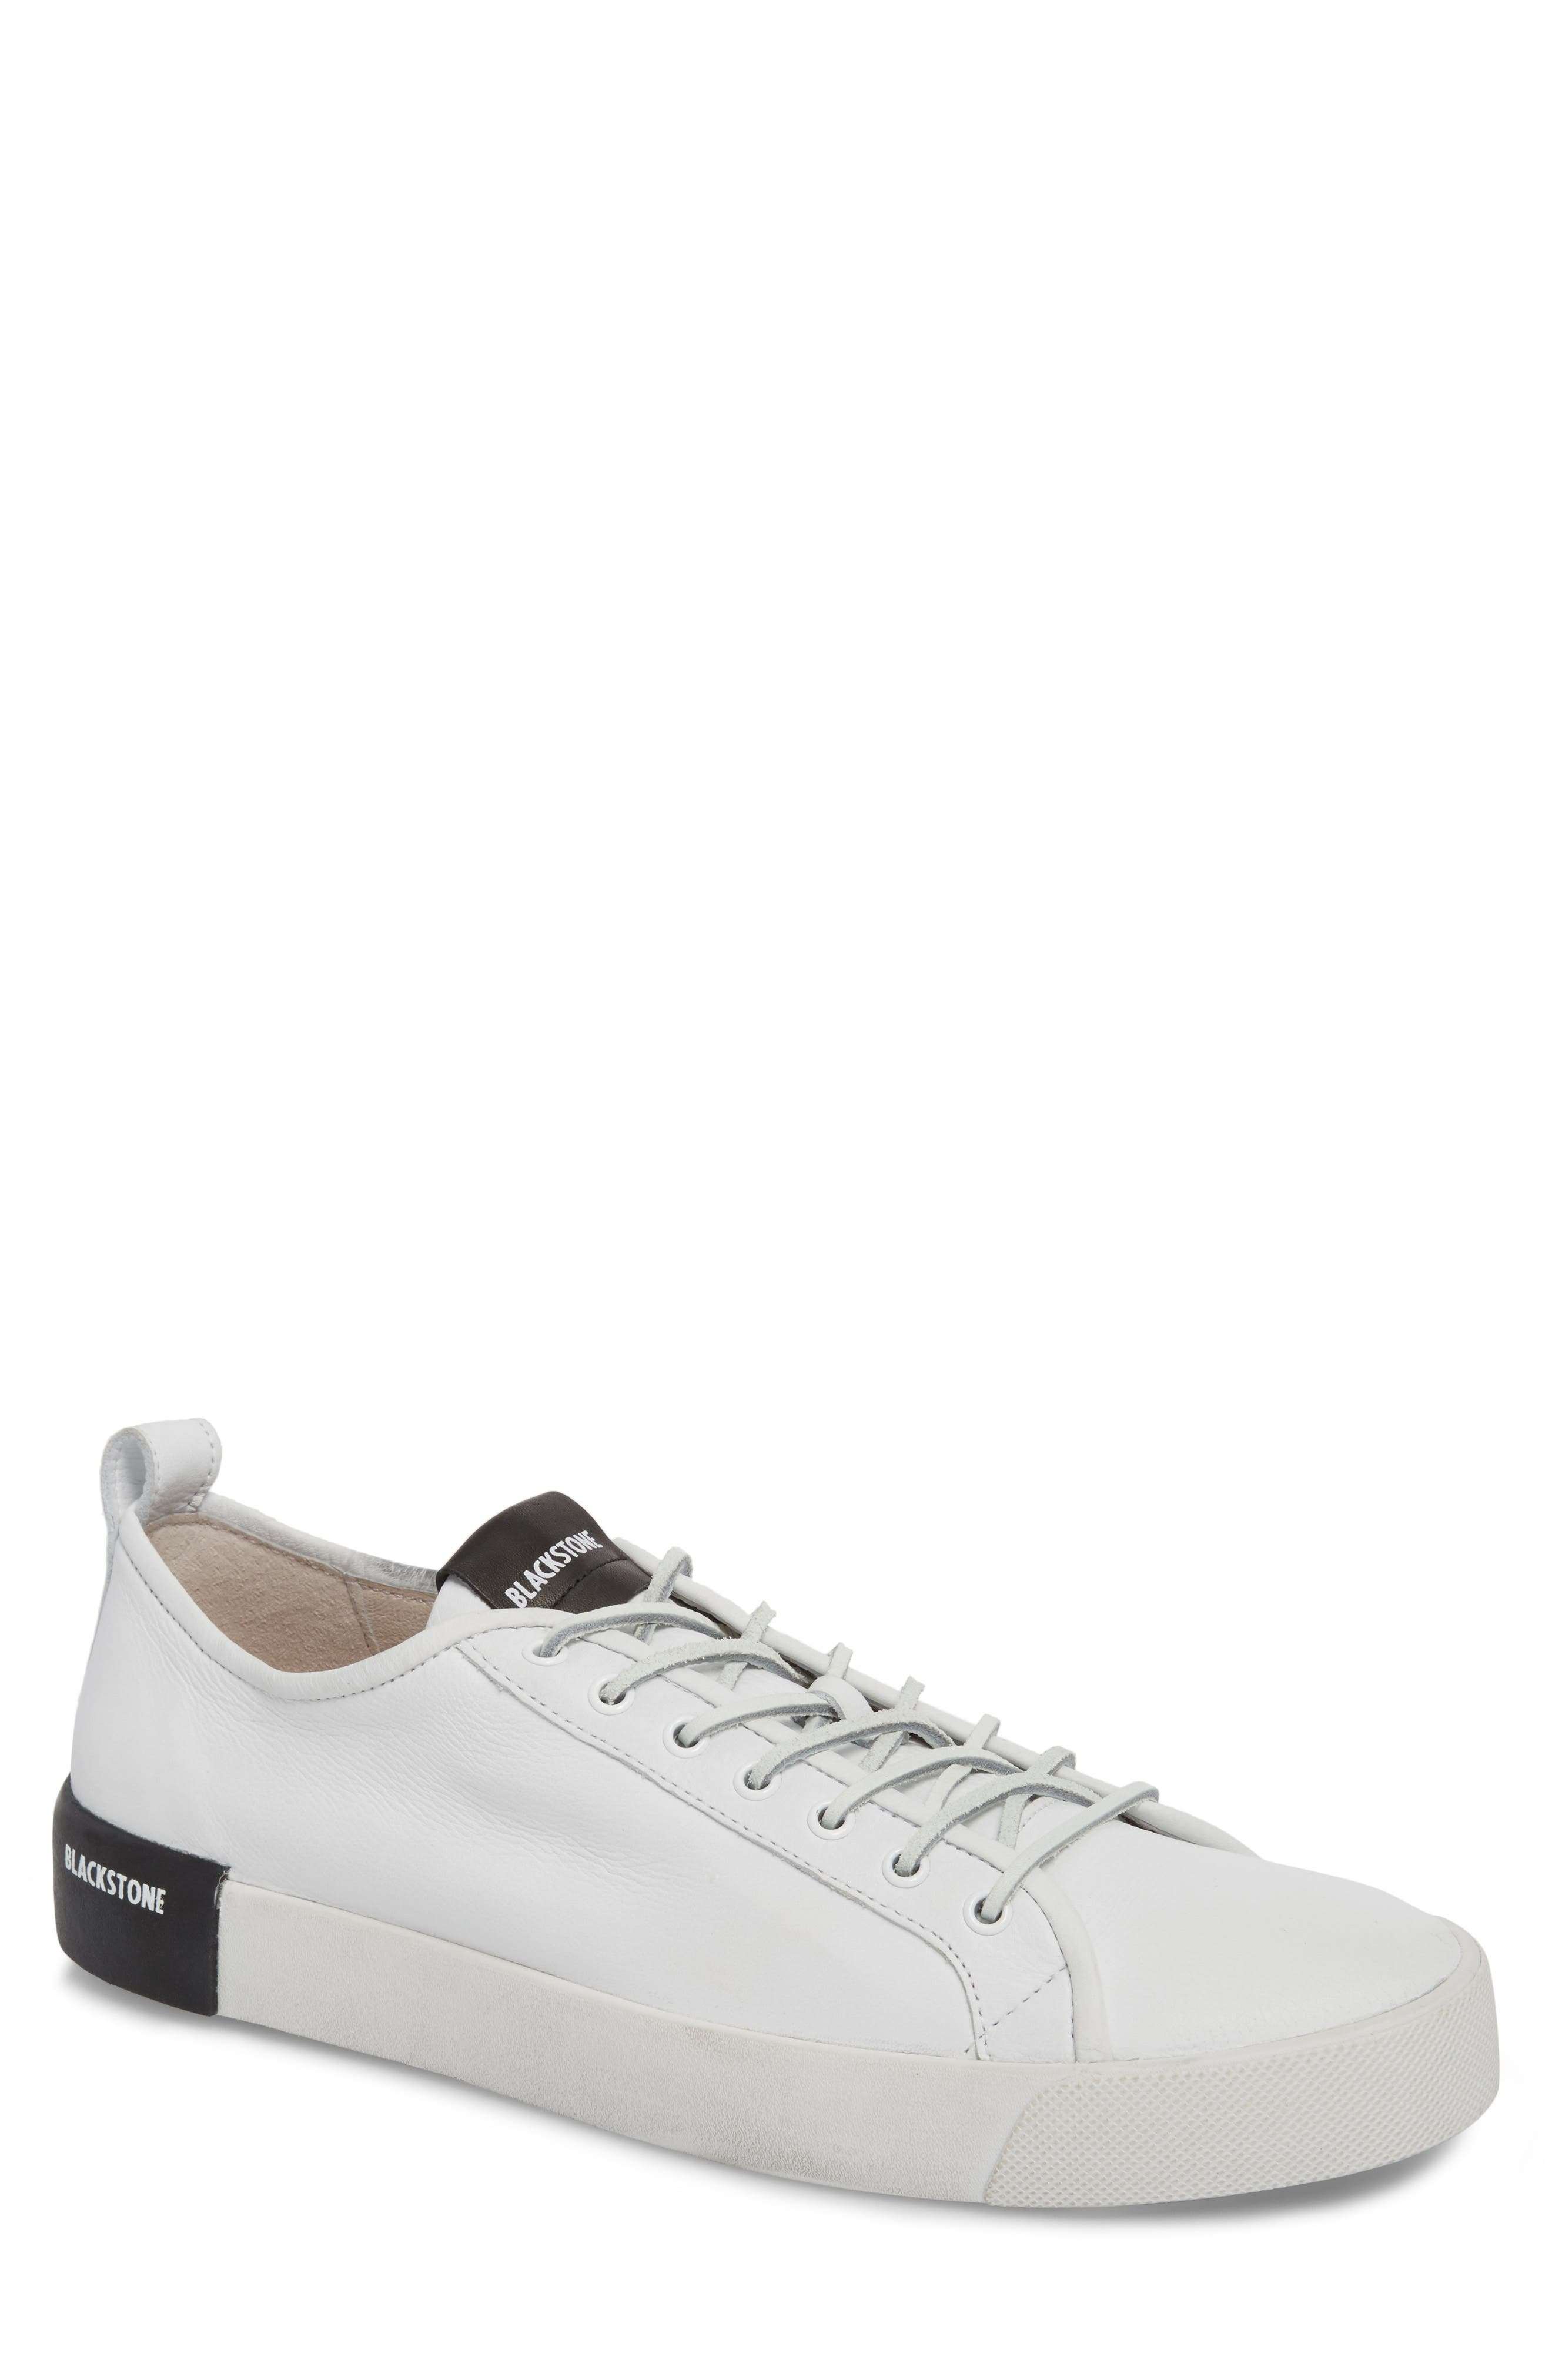 PM66 Low Top Sneaker,                         Main,                         color, White Leather